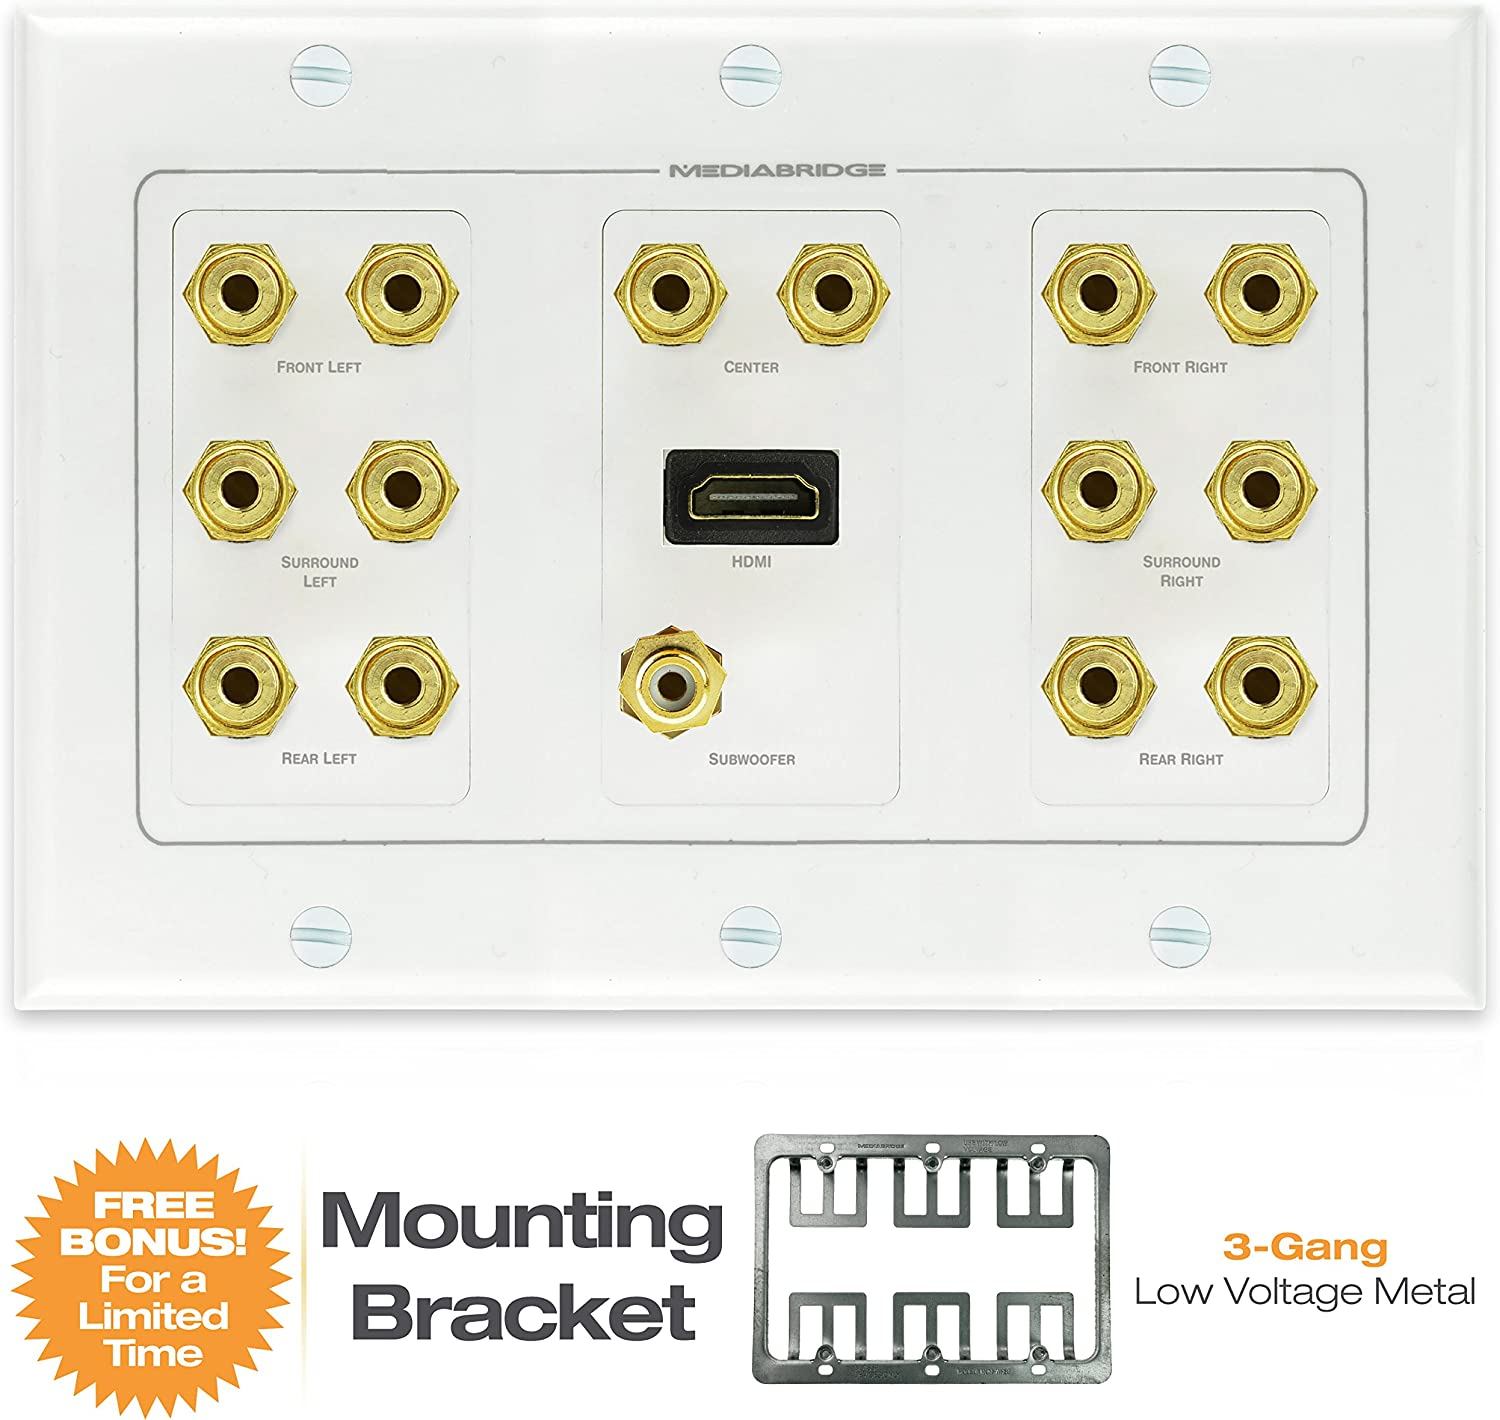 ARC 2 Port Part# WP1-HDMIX2 1-Gang - Supports 4K Limited TIME Offer: Free Low Voltage Metal Mounting Bracket - 2-Piece Inset Wall Plate for 2 HDMI 3D Mediabridge HDMI Wall Plate